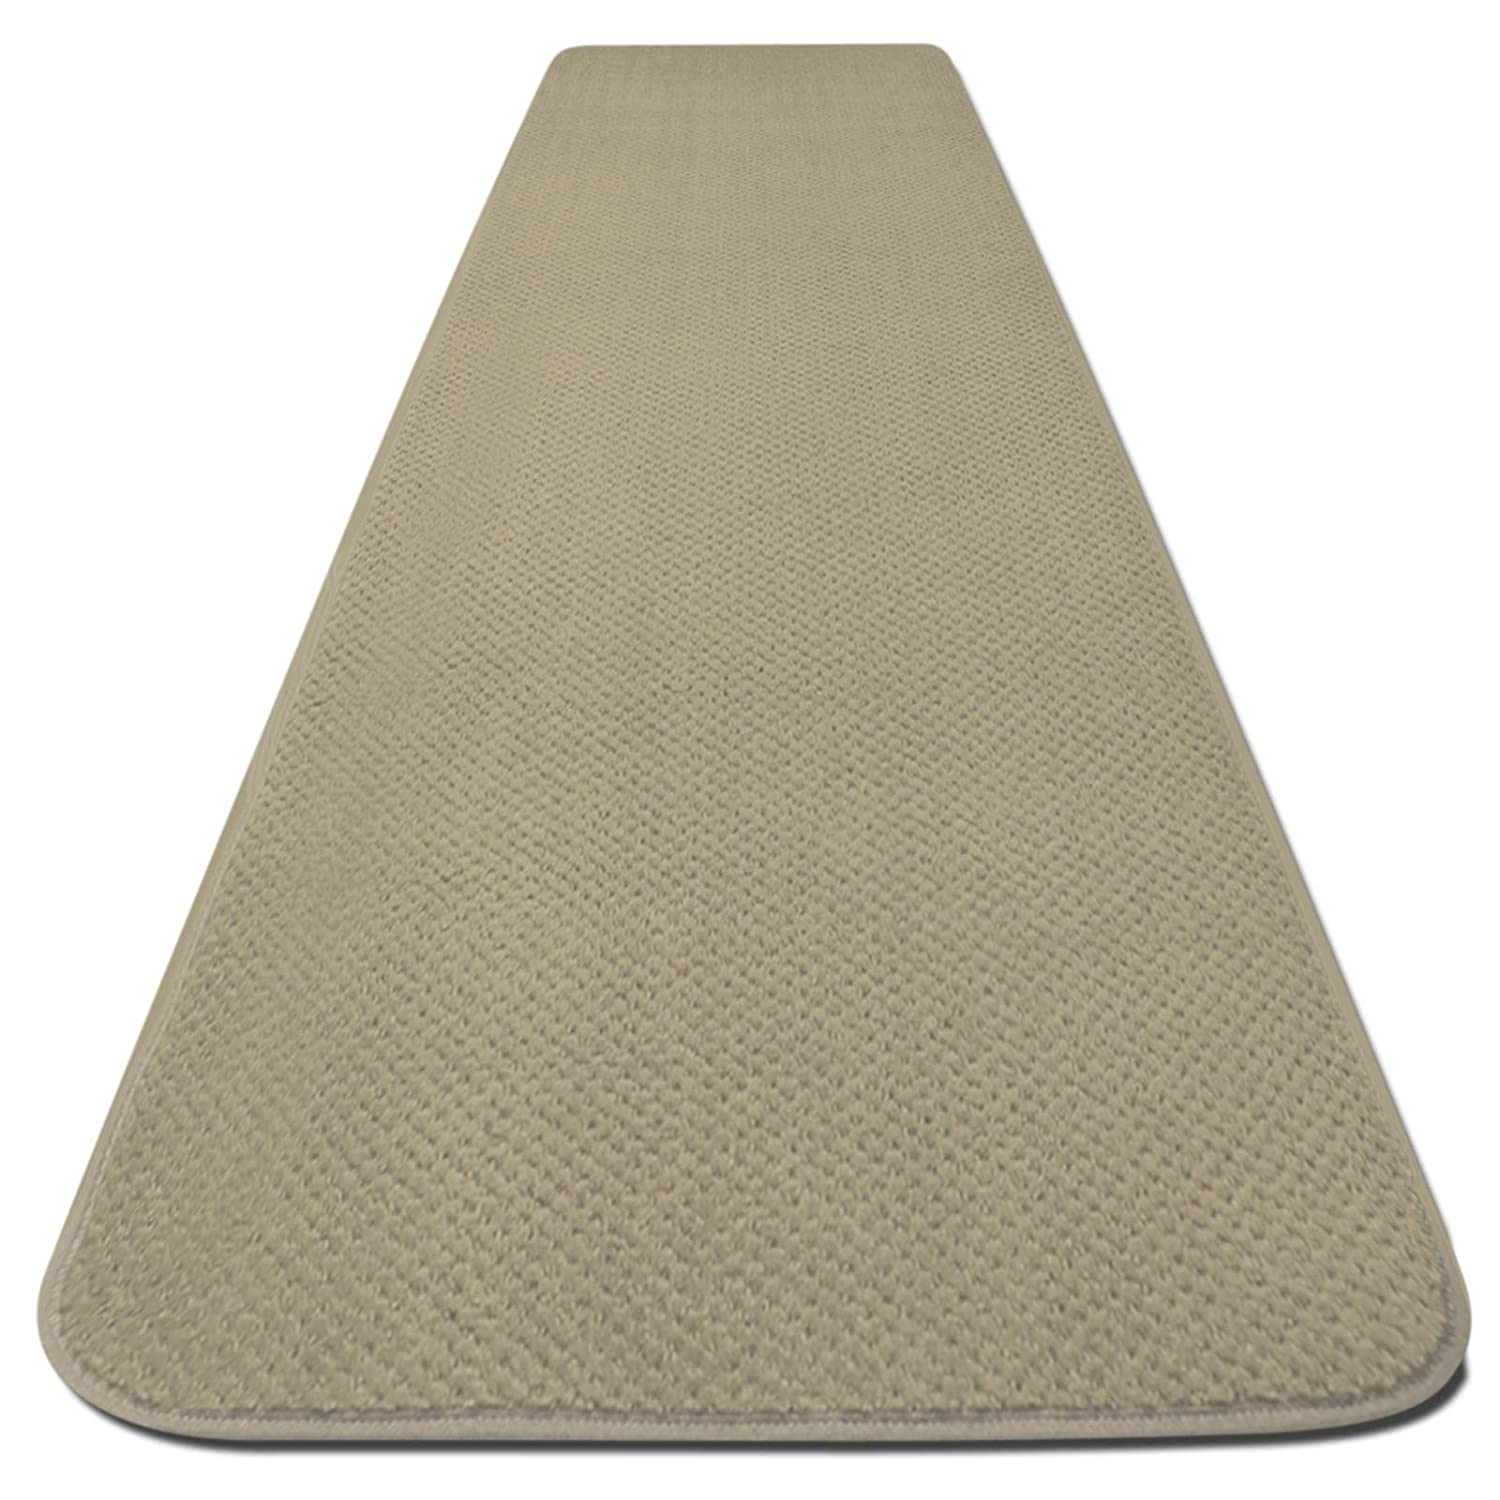 House, Home and More Skid-Resistant Carpet Runner - Ivory Cream - 6 Feet X 27 Inches